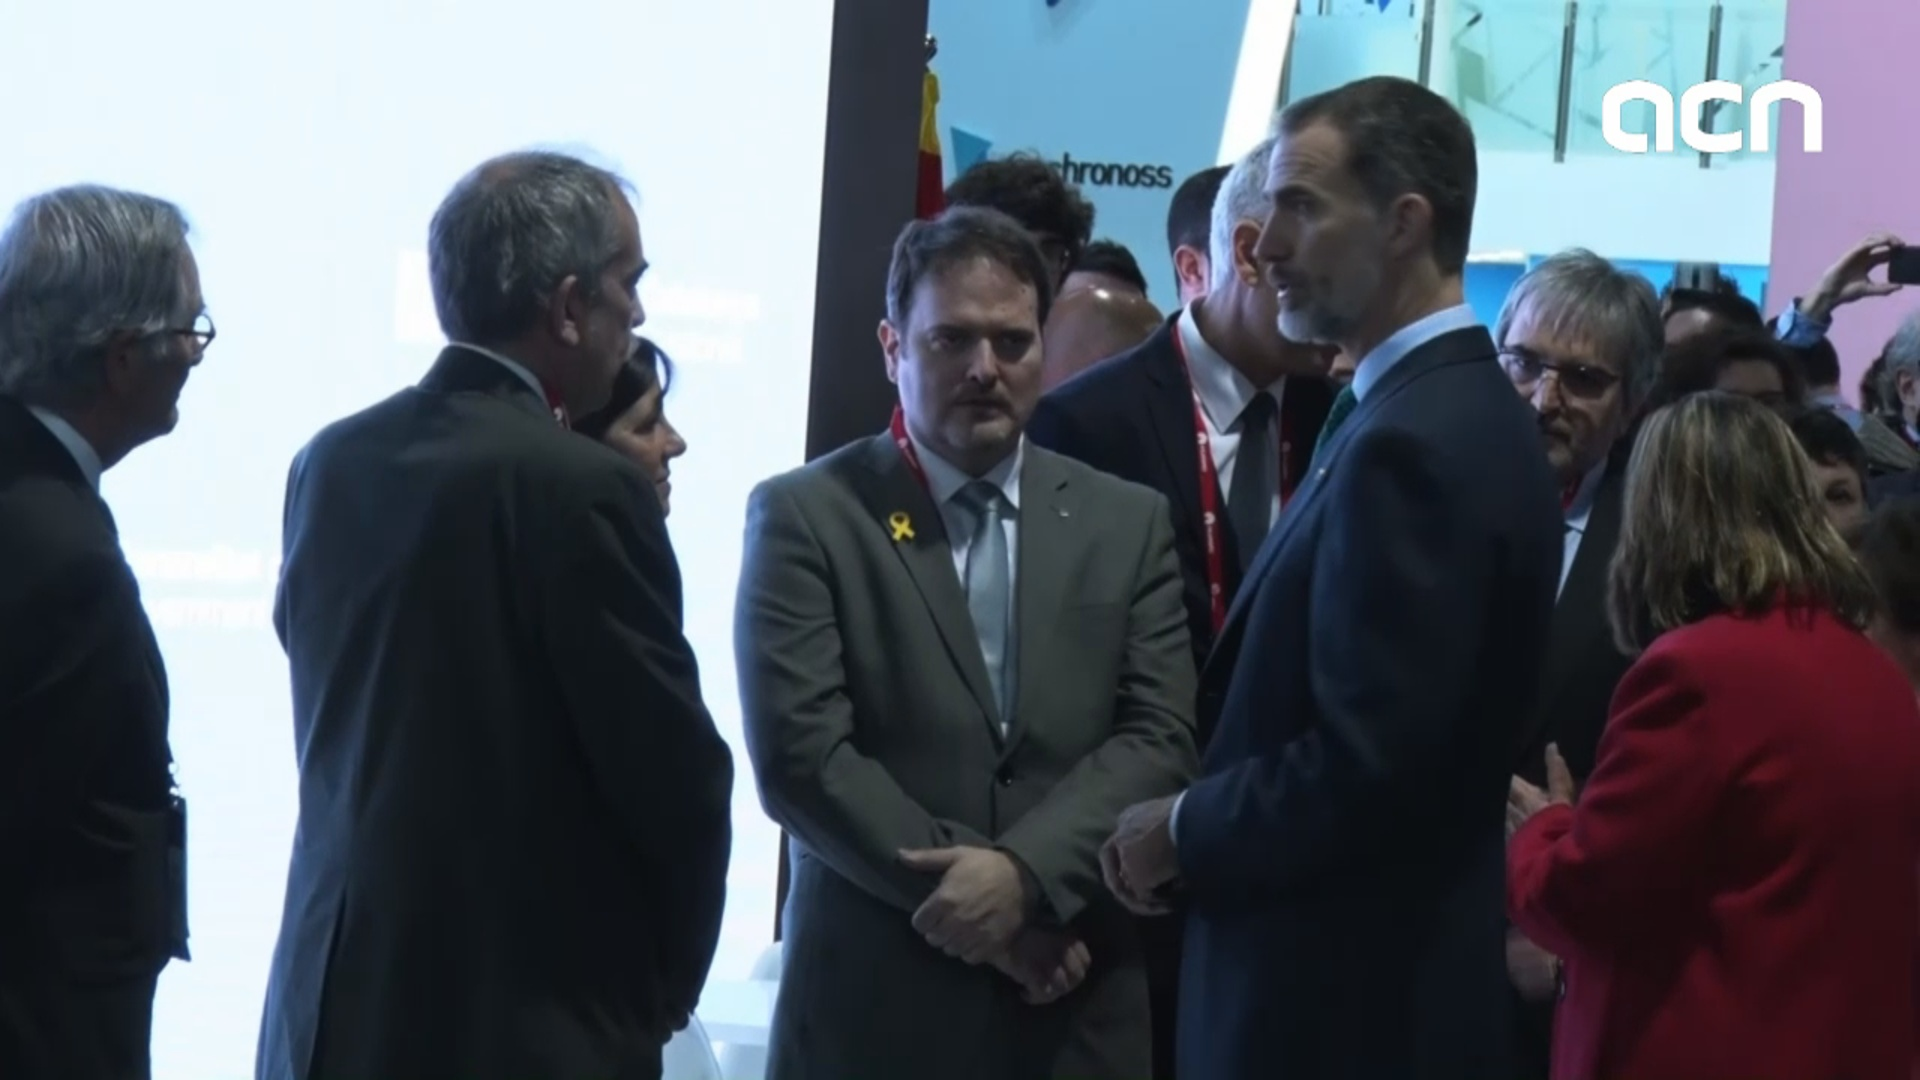 King Felipe had to face Catalan officials with yellow ribbons